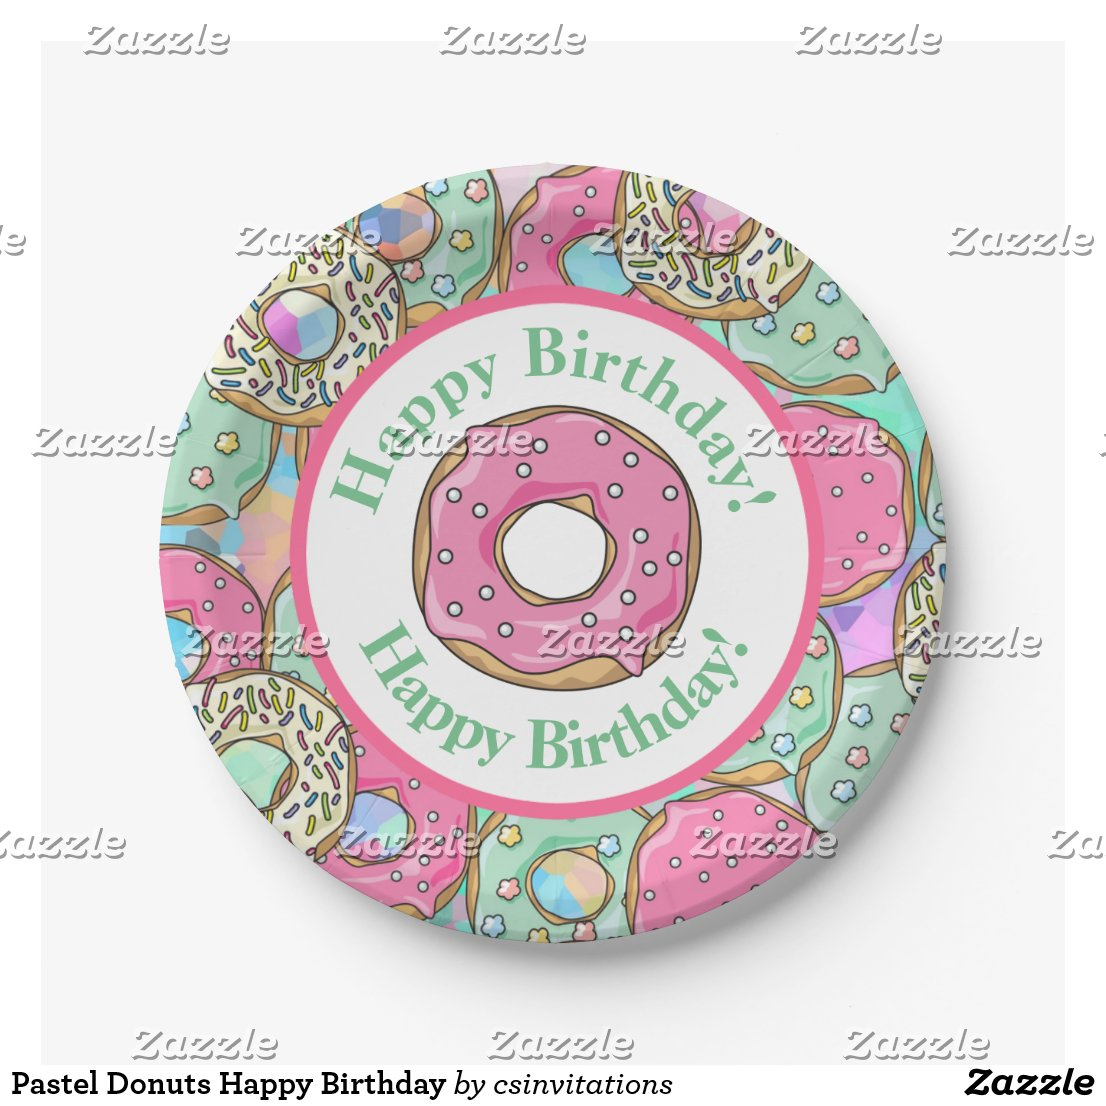 Pastel Donuts Happy Birthday